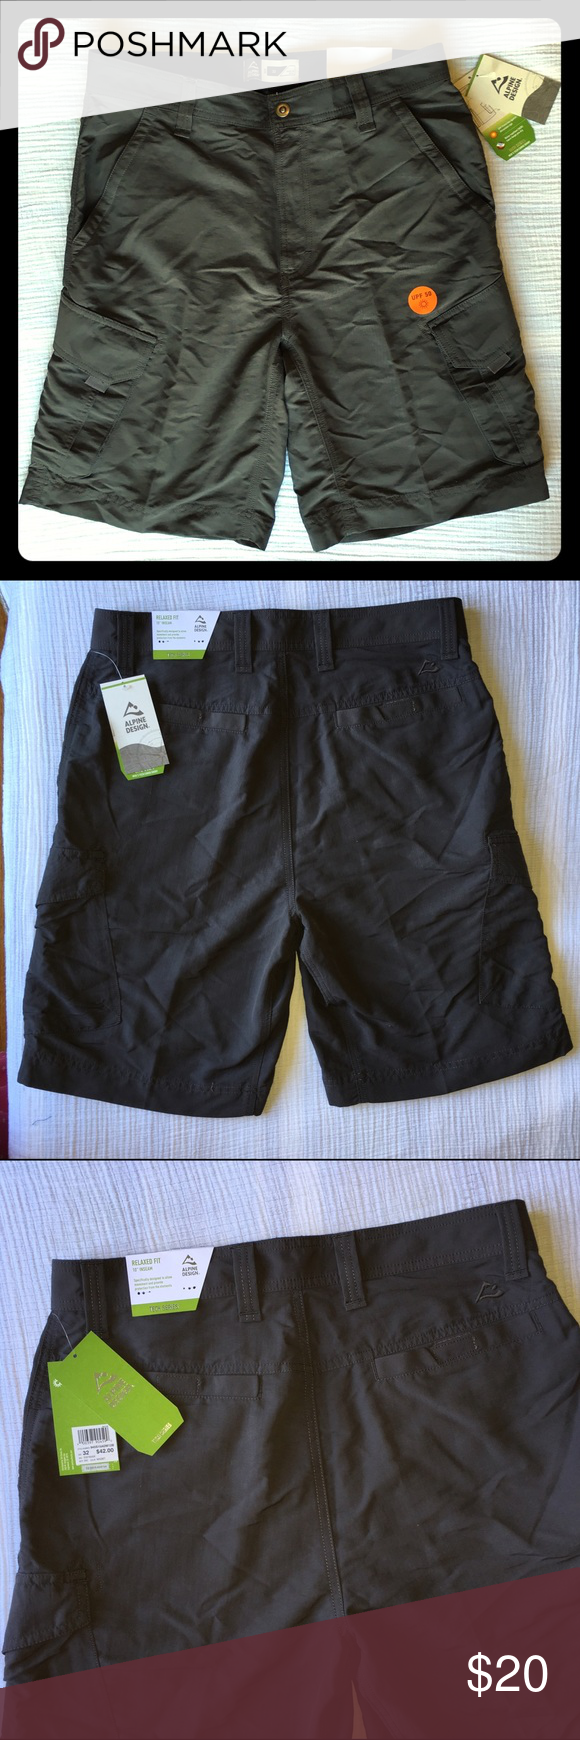 MENS NWT.....Alpine Design Tech Cargo Shorts Grey! Alpine design tech cargo shorts size 32 relaxed fit charcoal gray 10 inch inseam. Upf 50 water repellent  fabric keeps you dry. zippered side security pocket and reinforce seems. Alpine Design Shorts Cargos